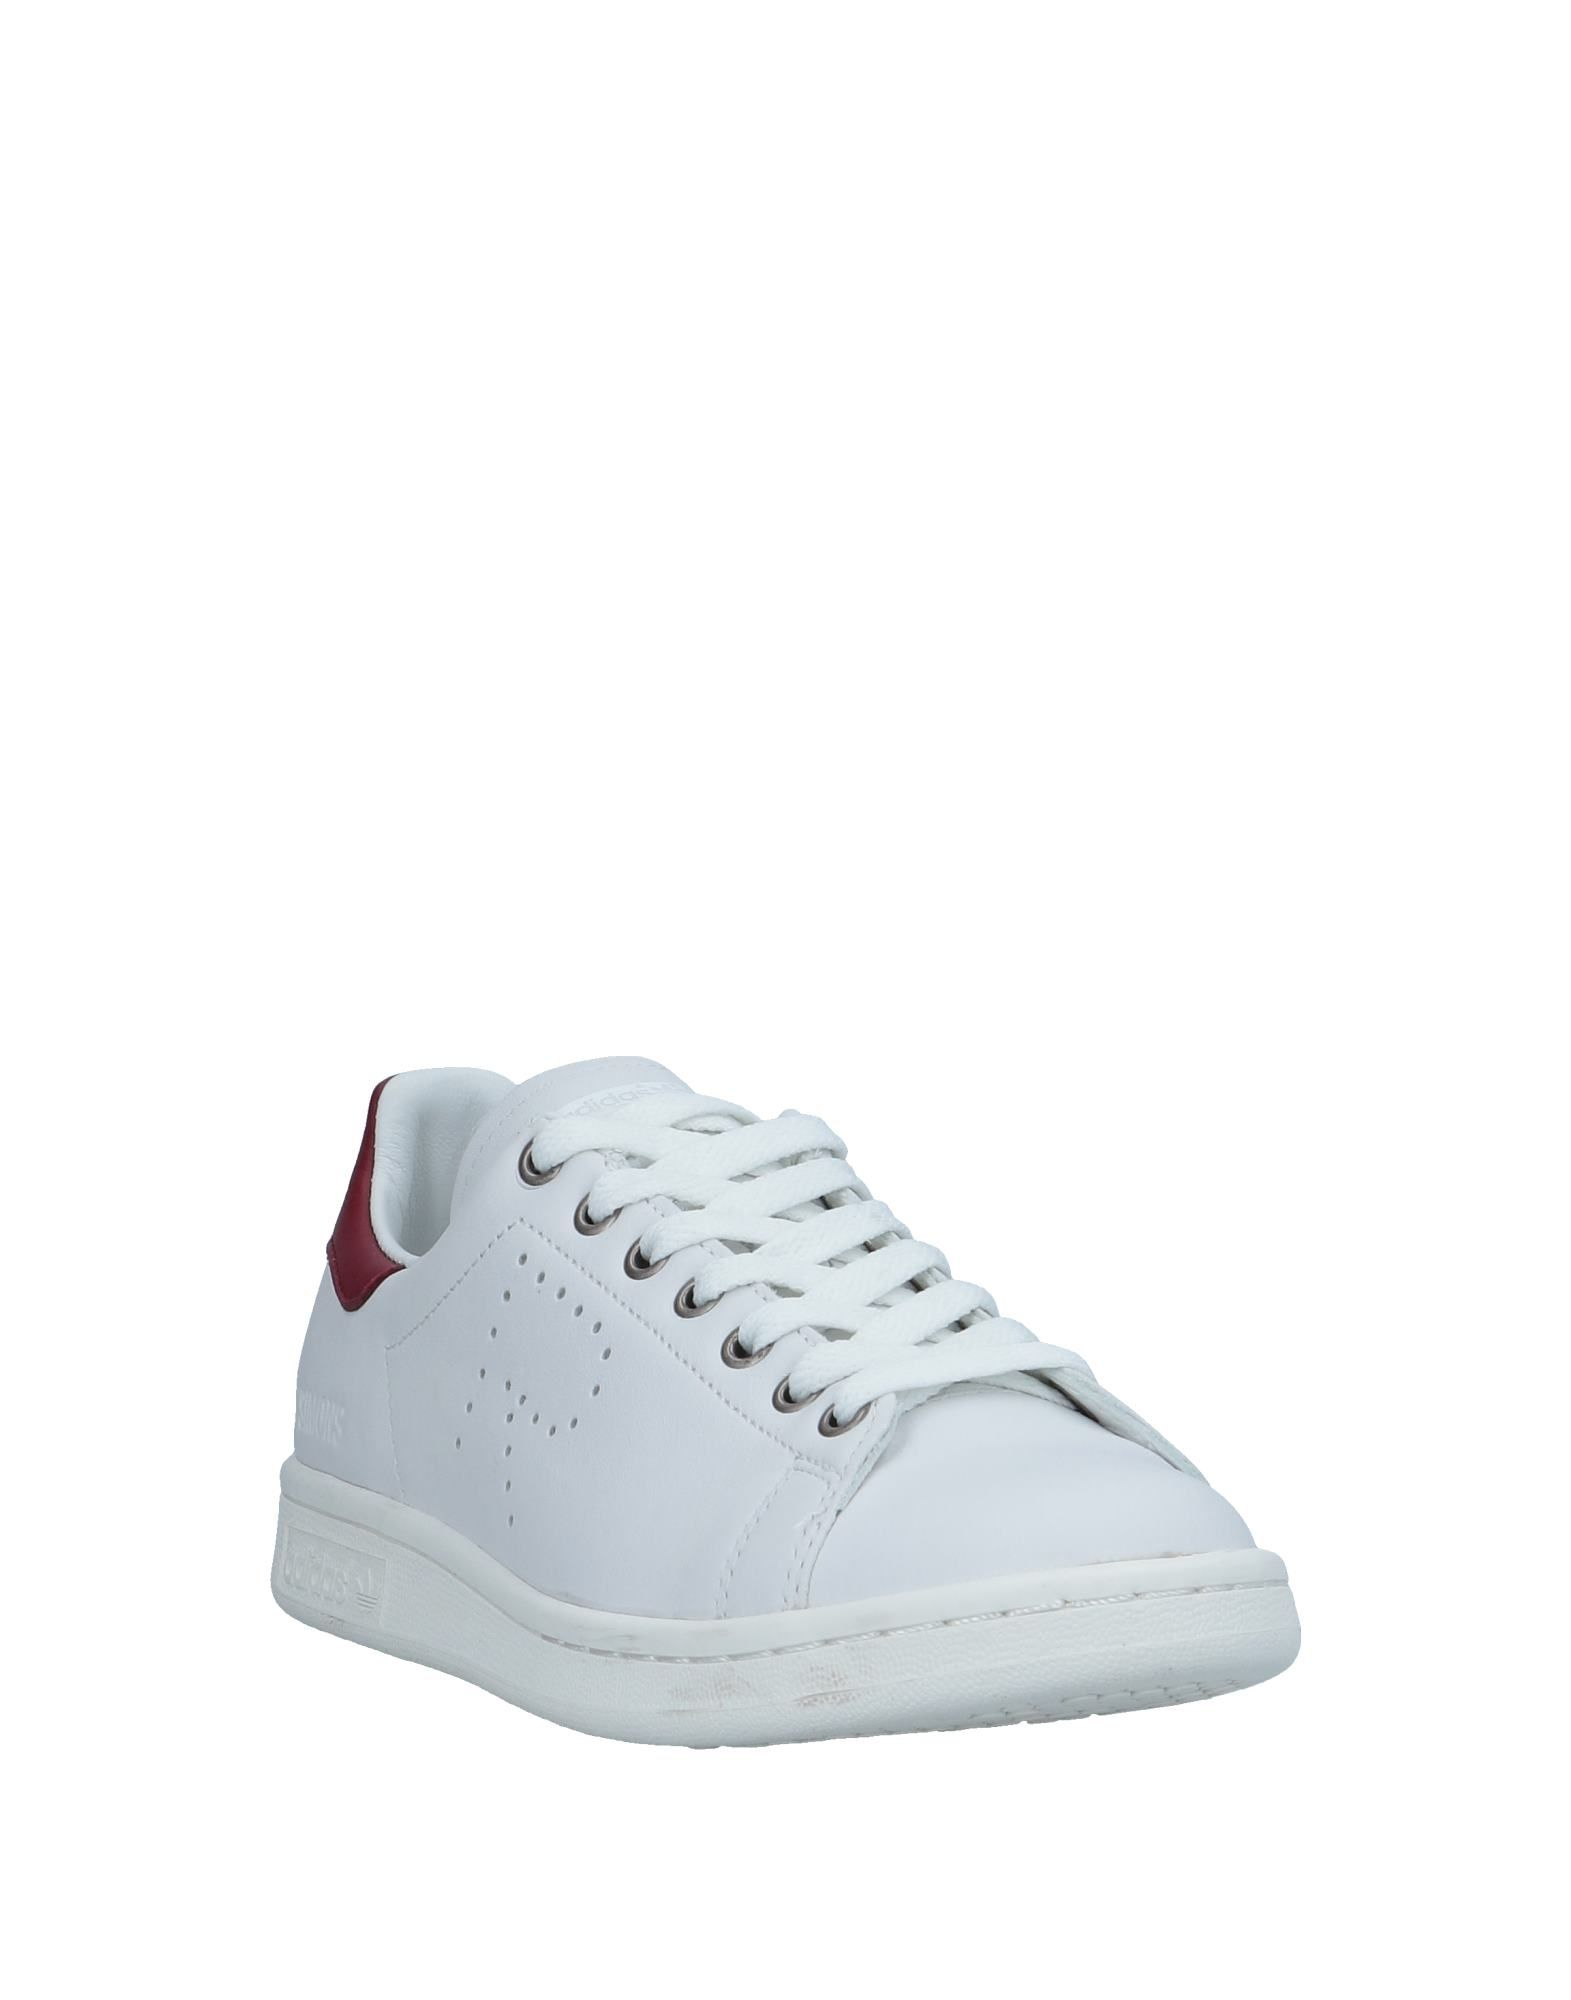 Adidas By By By Raf Simons Sneakers Damen  11532022EGGut aussehende strapazierfähige Schuhe e181af